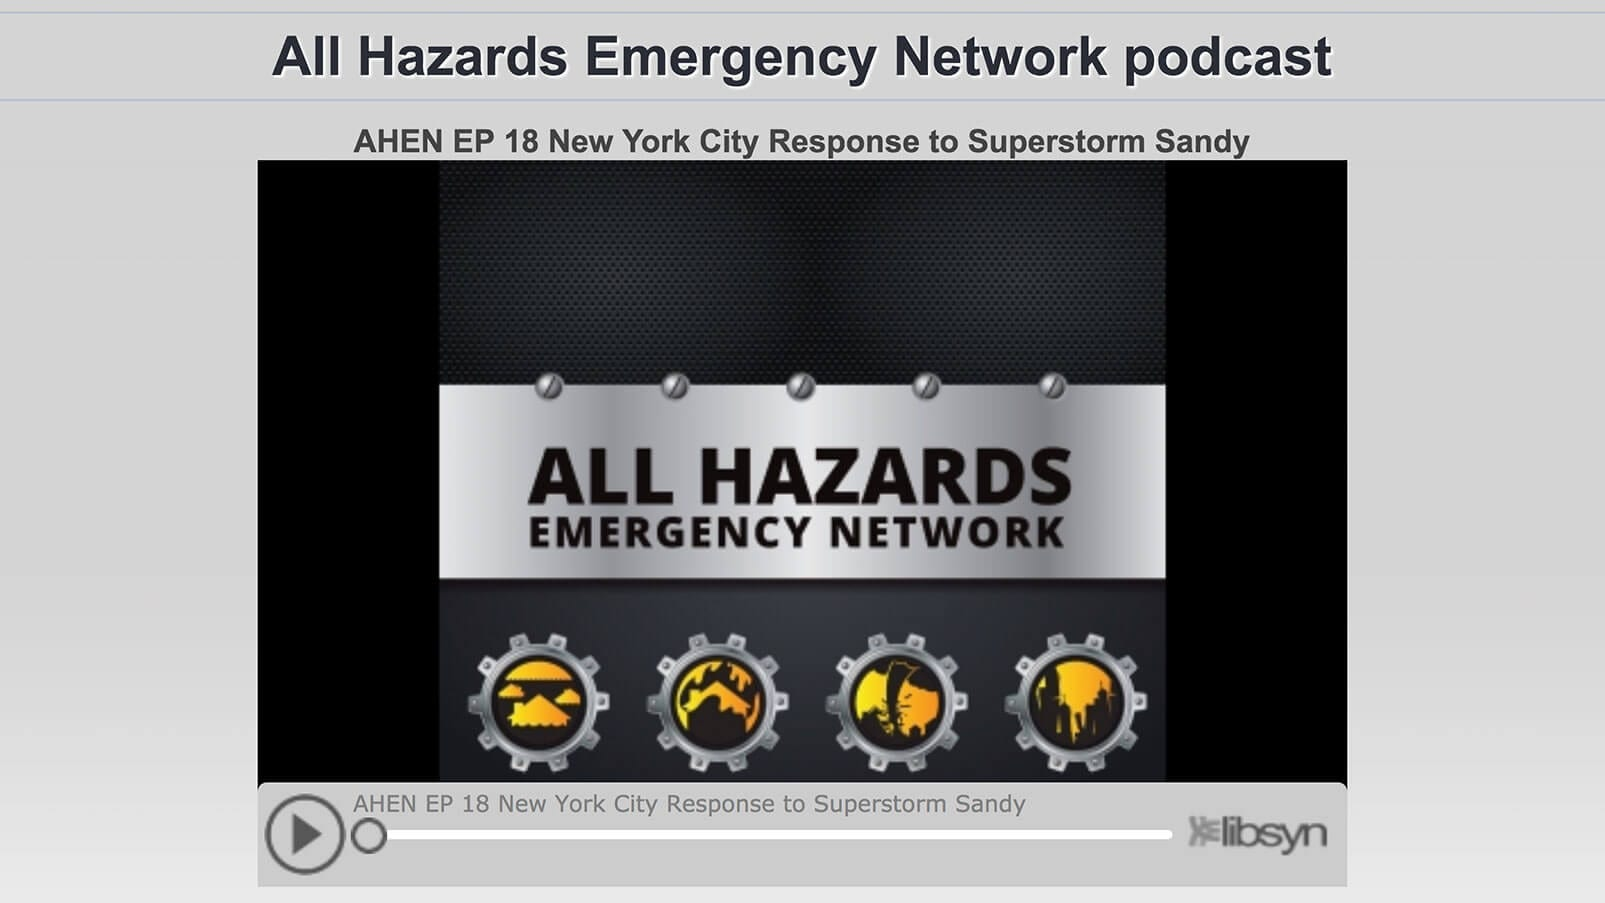 All Hazards Emergency Network Podcast